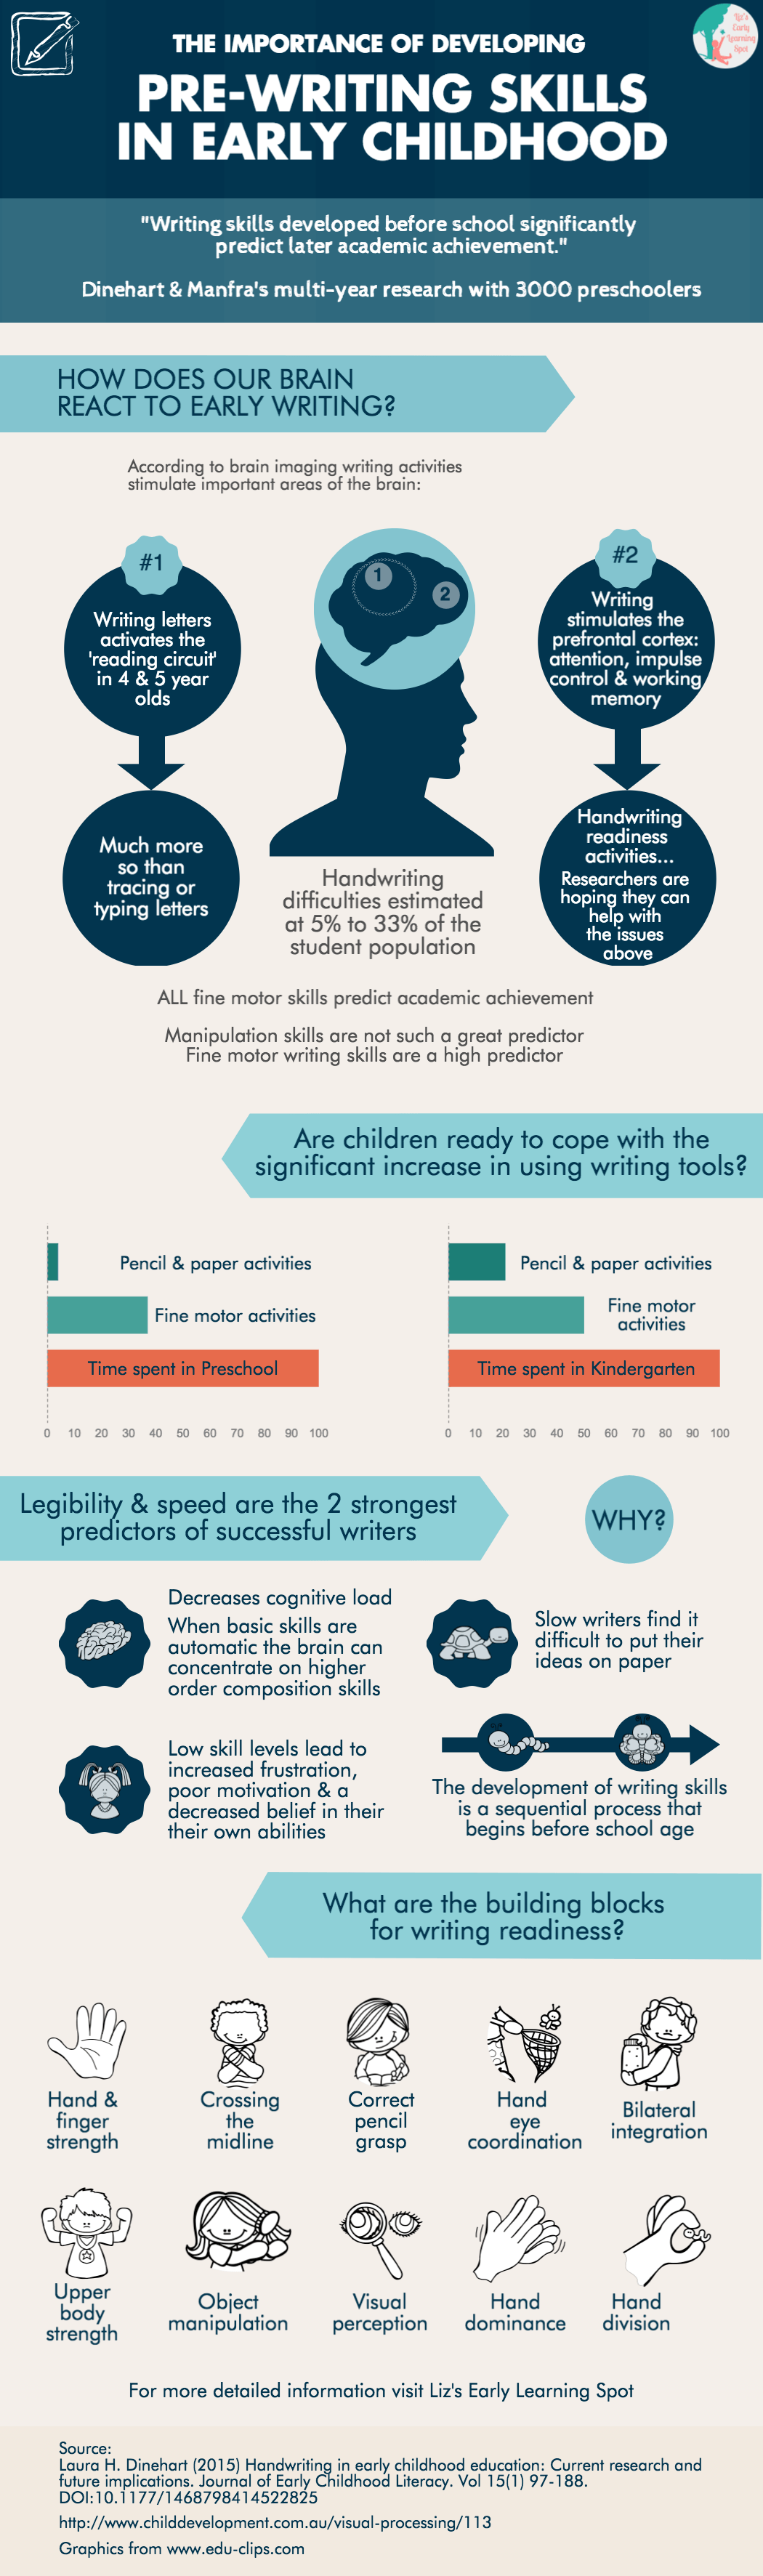 Developing Pre-Writing Skills in Early Childhood Infographic